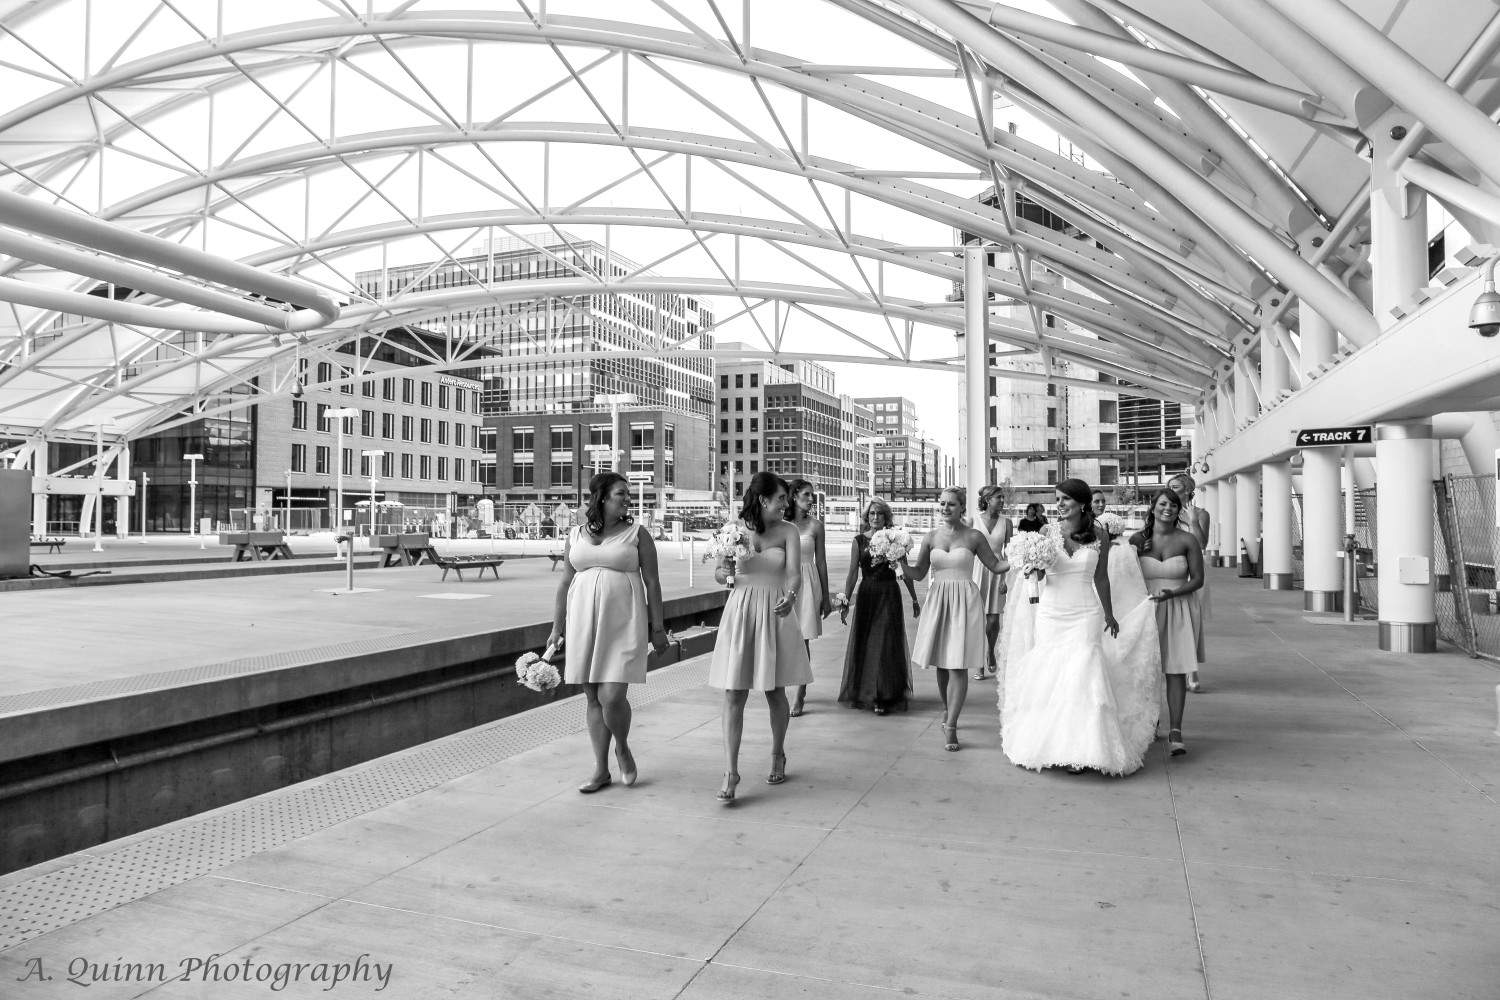 Walking through Union Station www.aquinnphotography.com